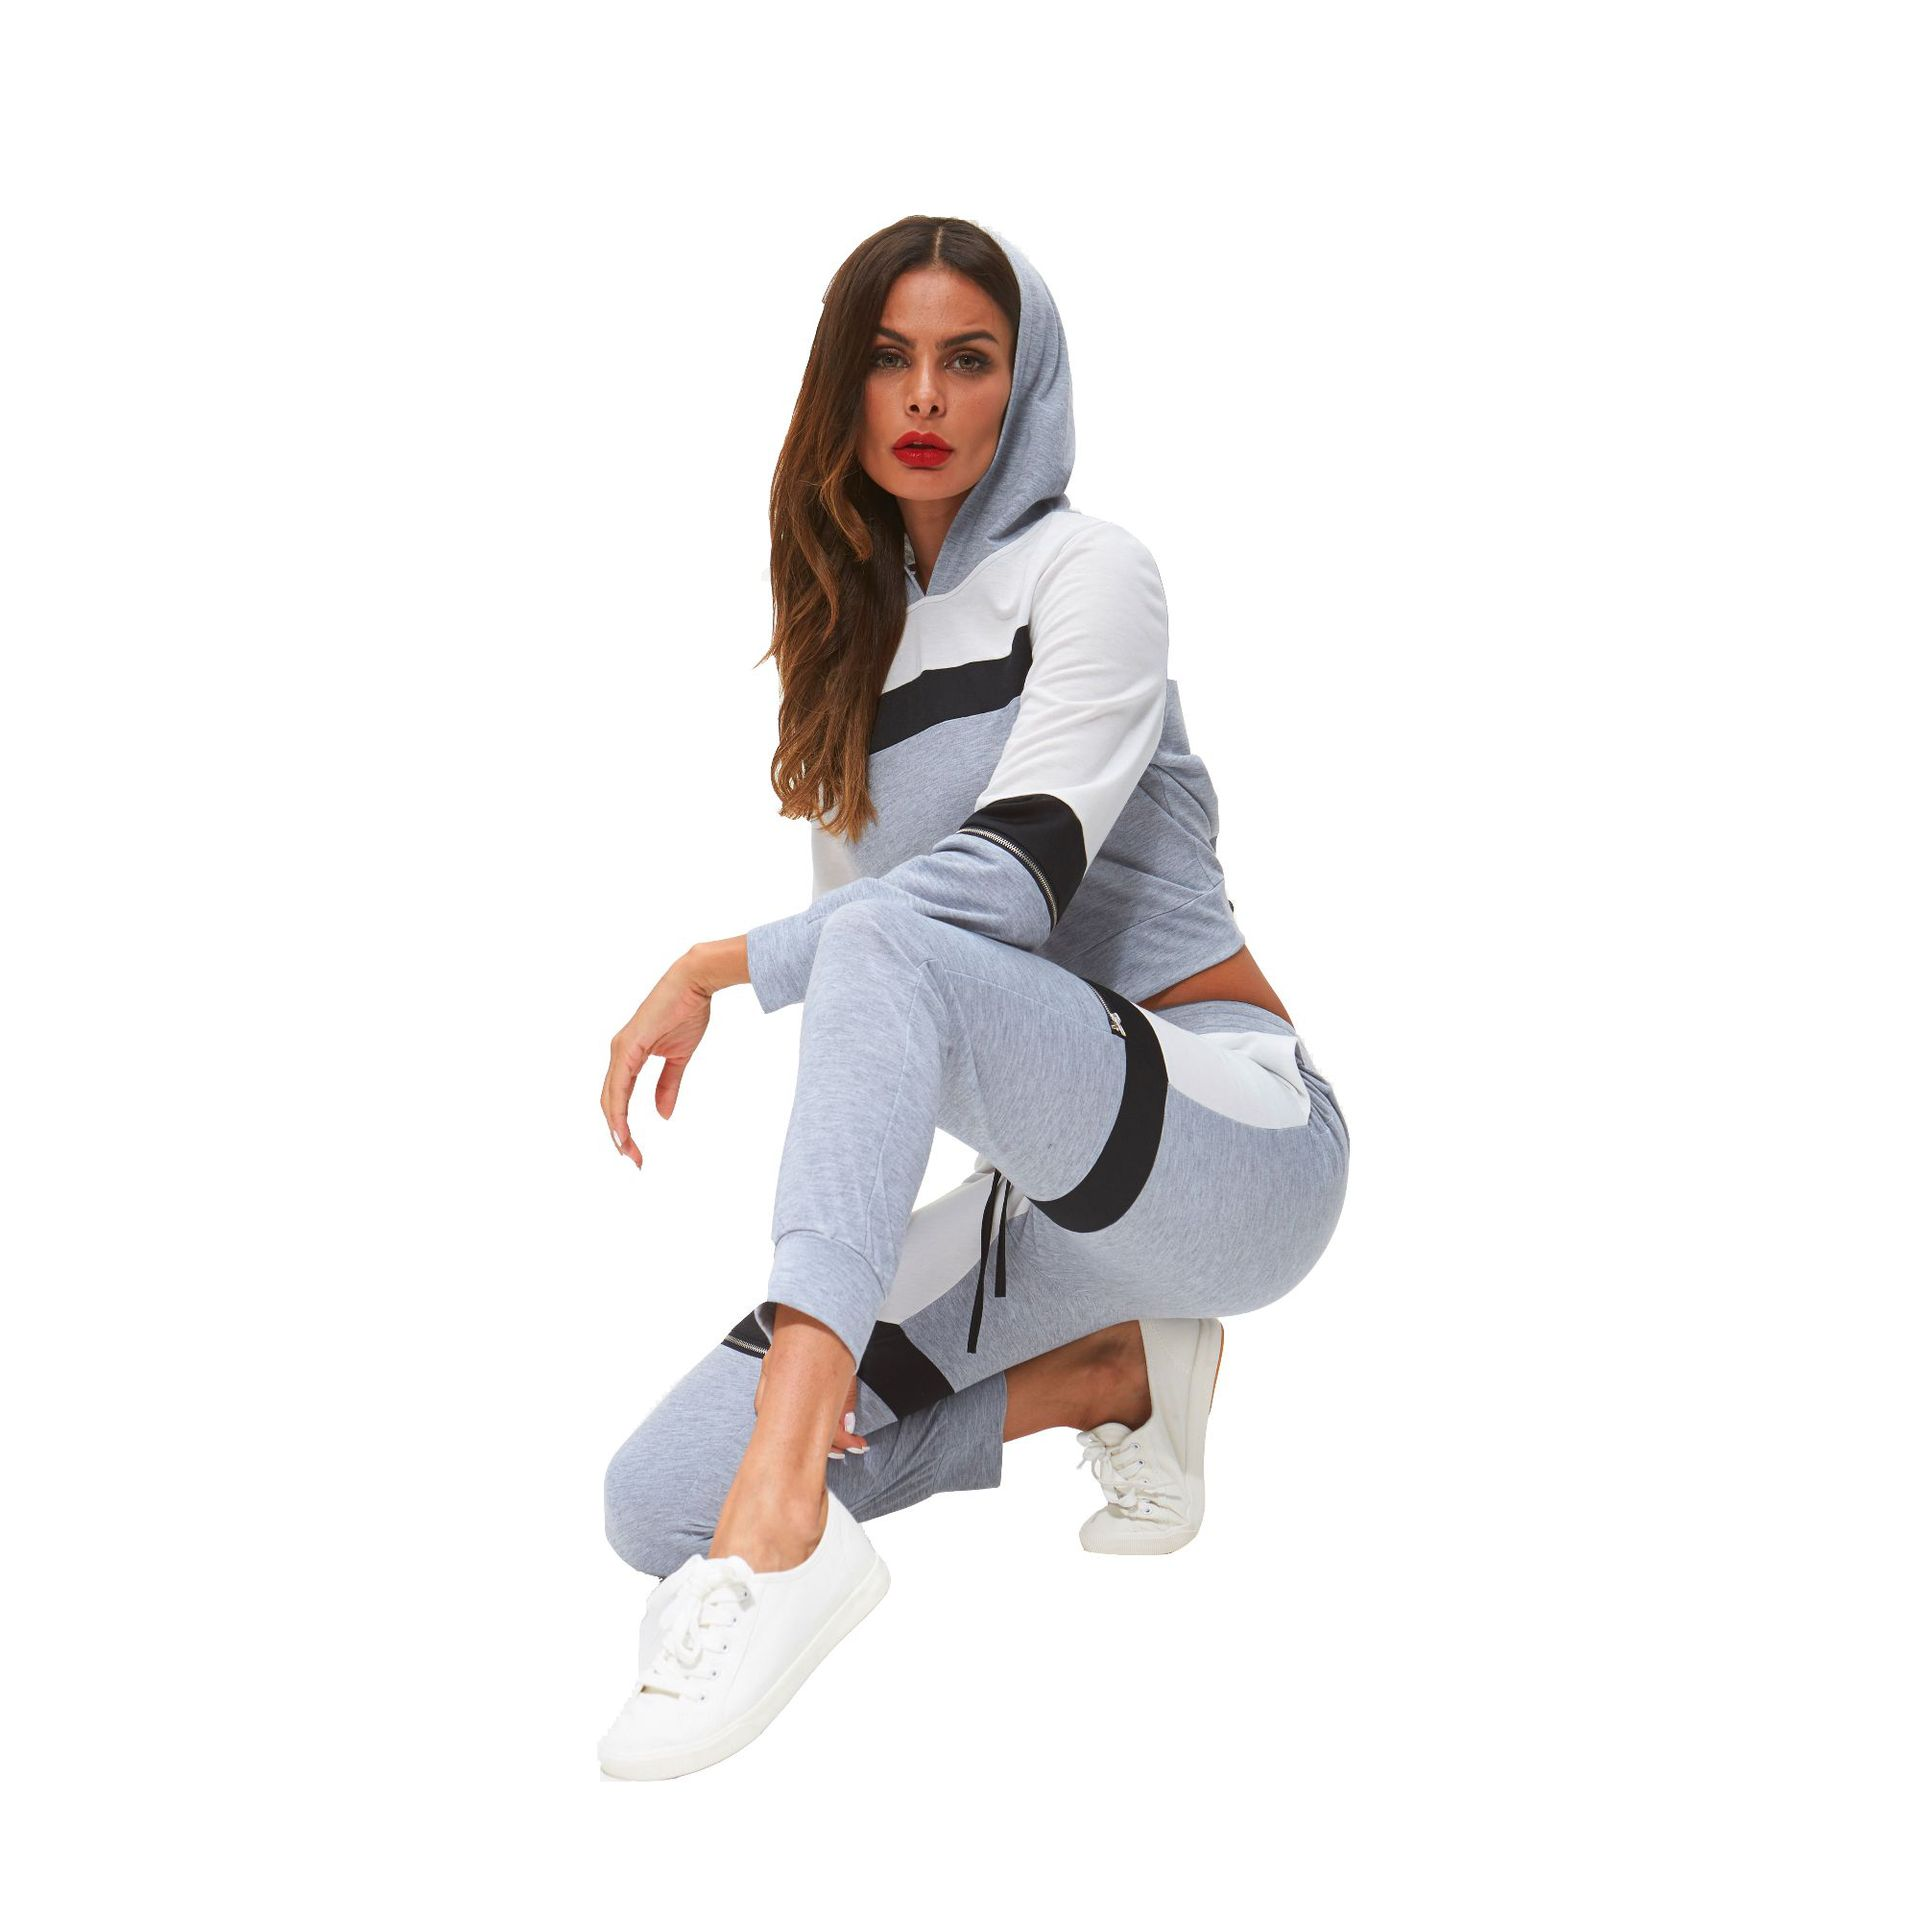 Supply Of Goods Autumn & Winter New Style Hooded Short Tops + Mixed Colors Trousers Two-Piece Casual WOMEN'S S